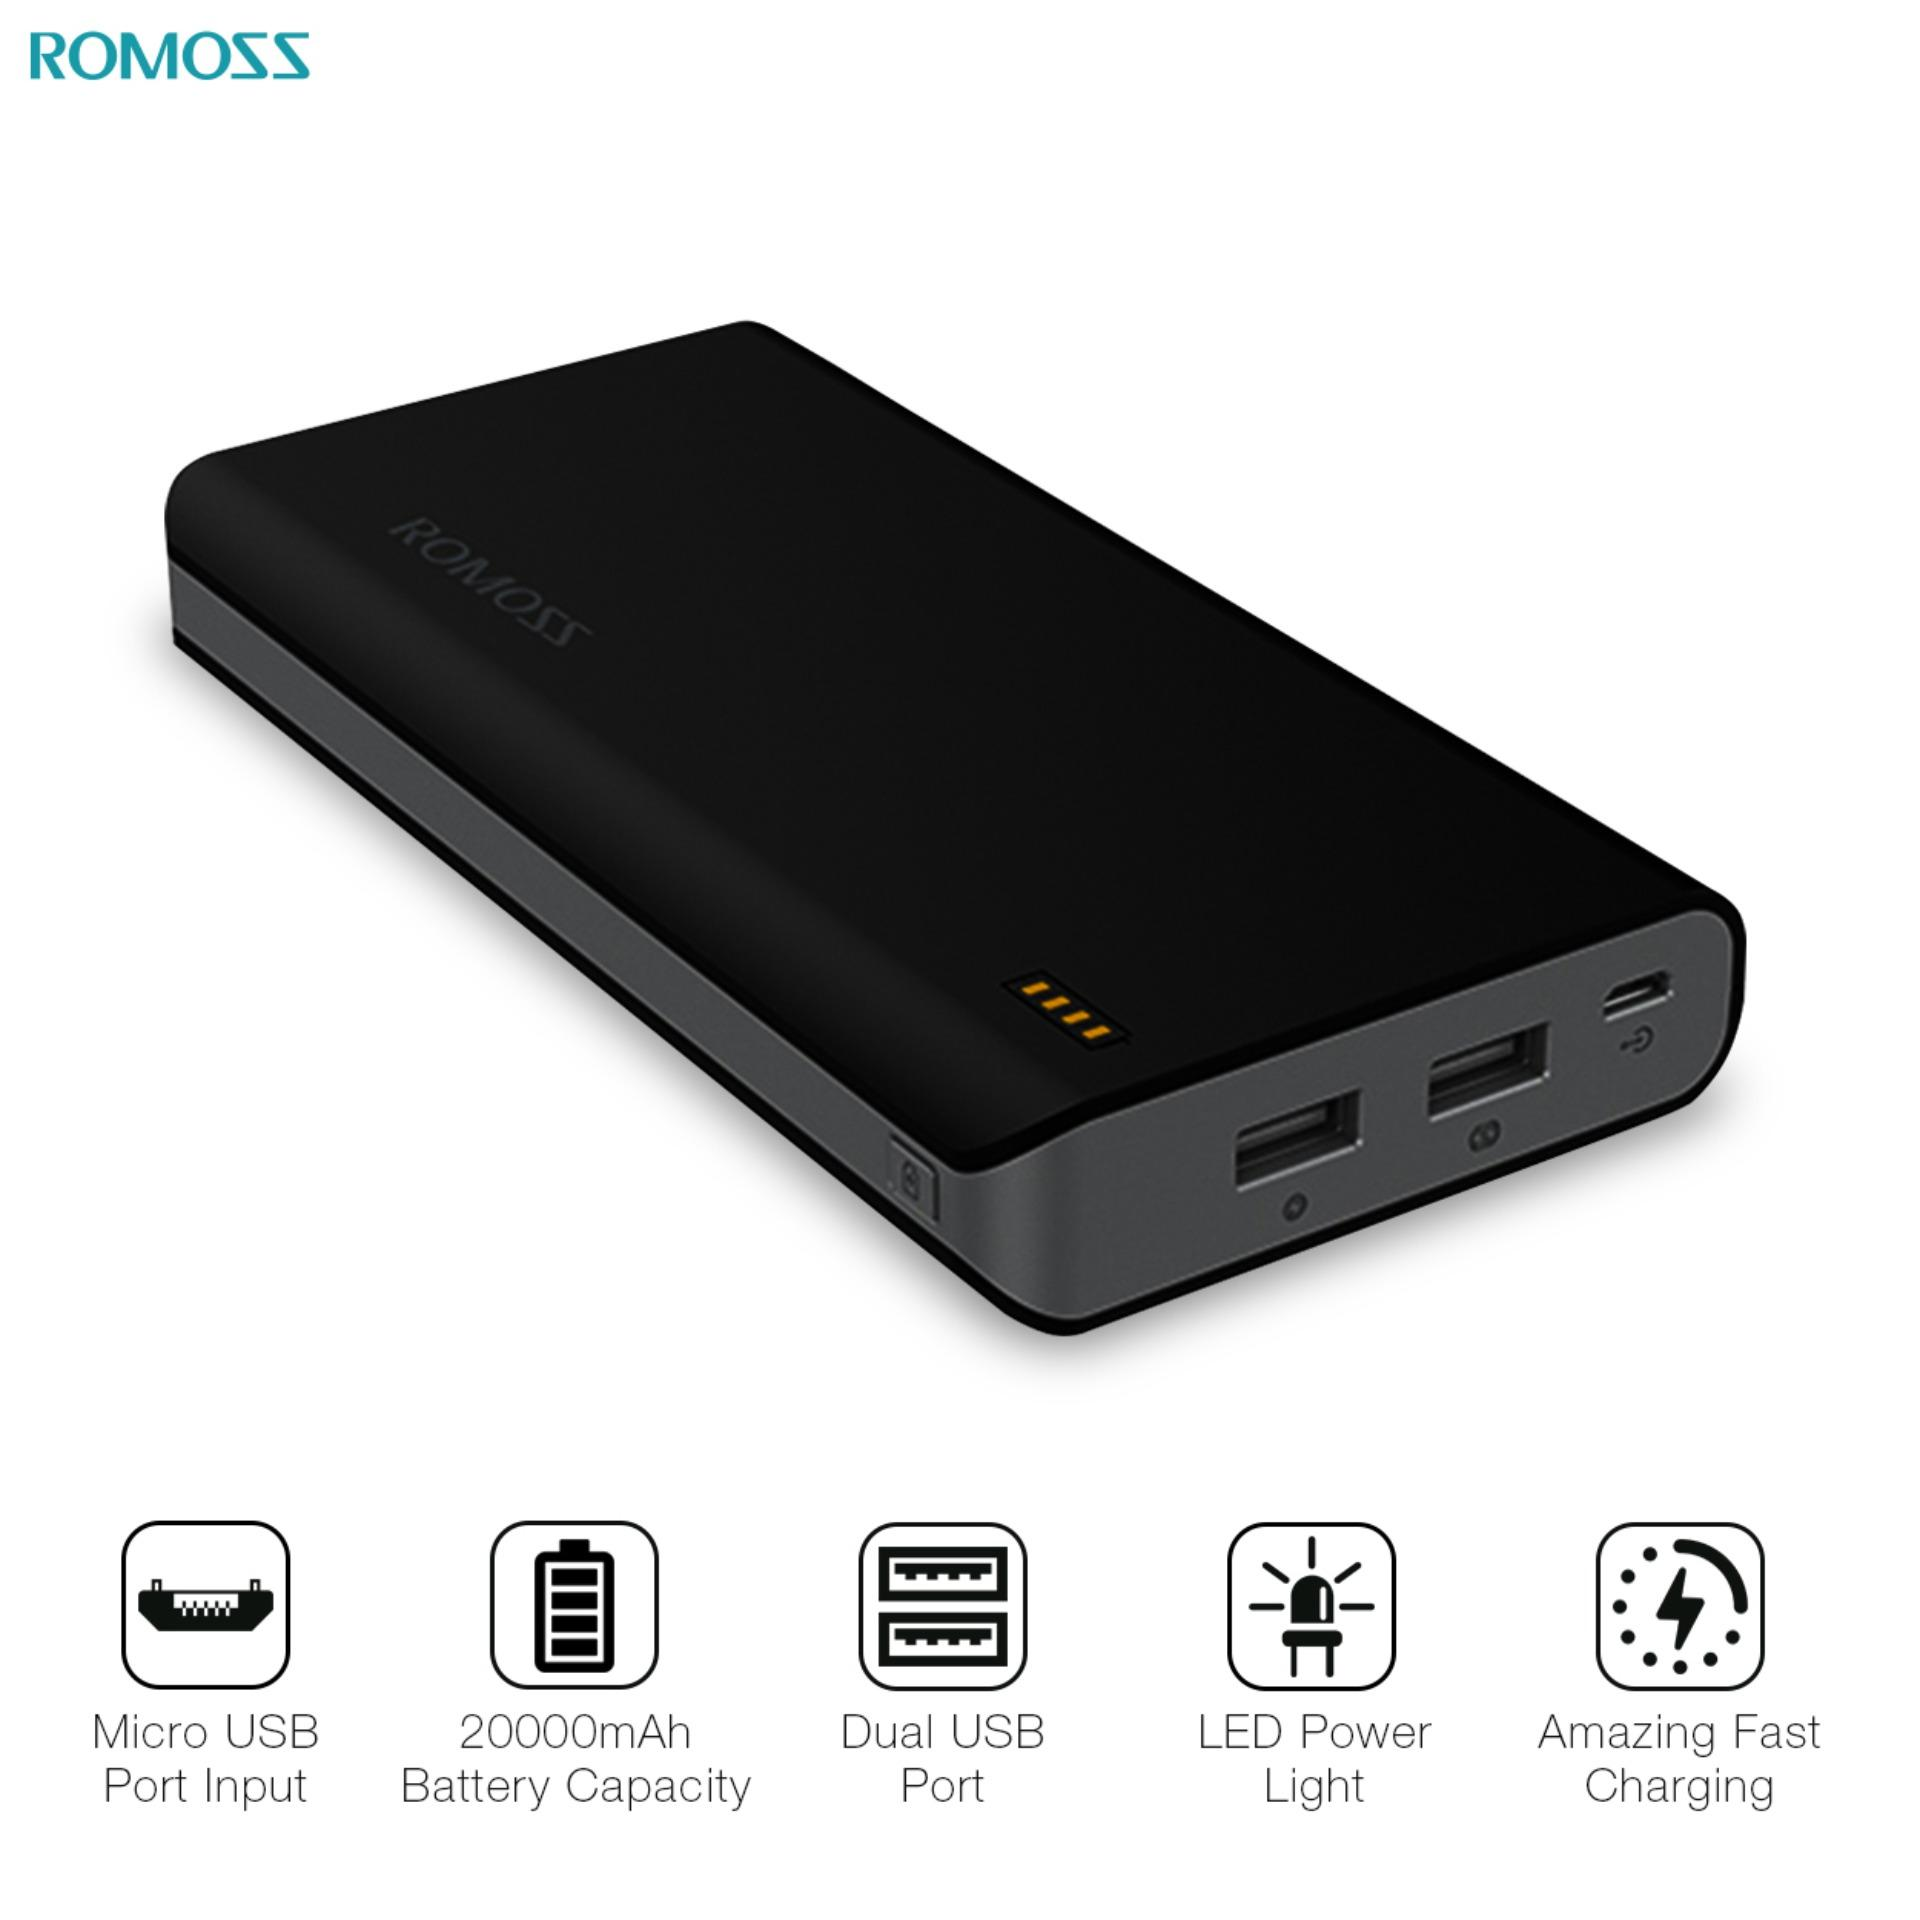 Power Bank For Sale Charger Prices Brands Specs In Official Xiaomi Powerbank 2 10000mah Romoss Solit 20 20000mah Black